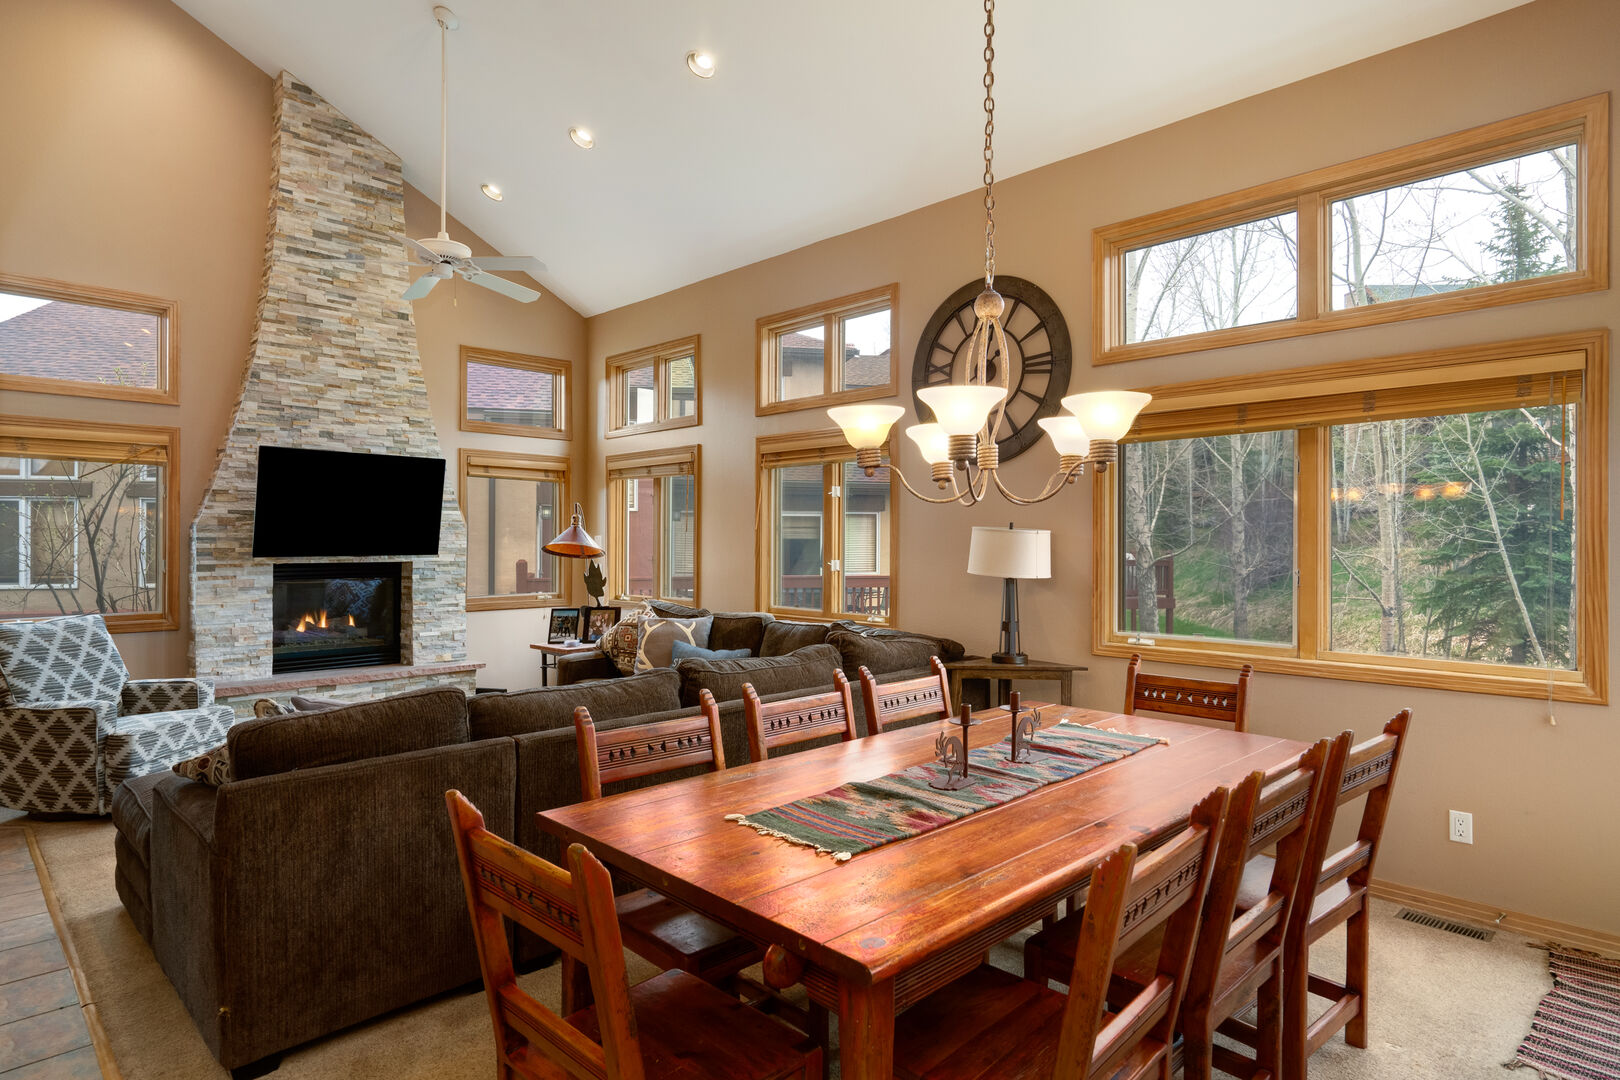 The living room and large dining table with room for 8. Tons of natural light!!